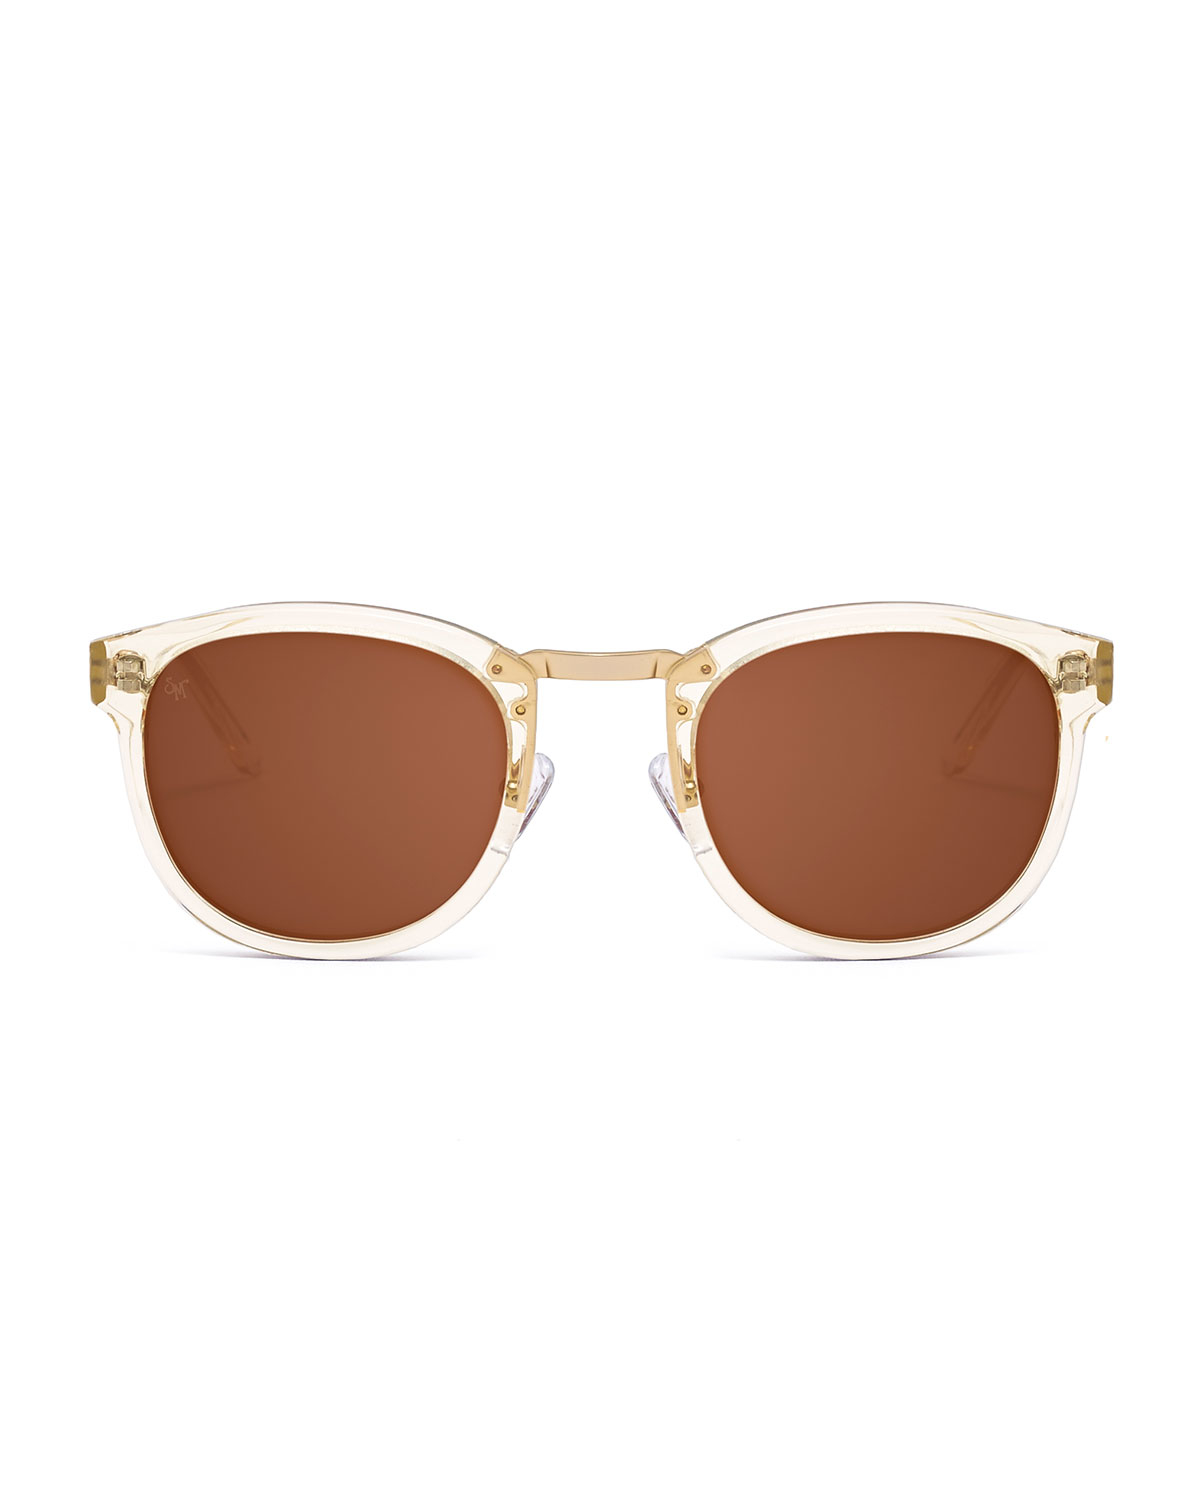 Where To Buy Cheap Custom Frames likewise Oakley Knew Pant Womens Reviews in addition 4 Jersey besides Bags Wordpress 4 6 1 also Ray Ban Sunglasses Lenses With A Blue Gradient Aviator Gradient Light Blue Rb3025 47285. on ray ban vagabond vintage